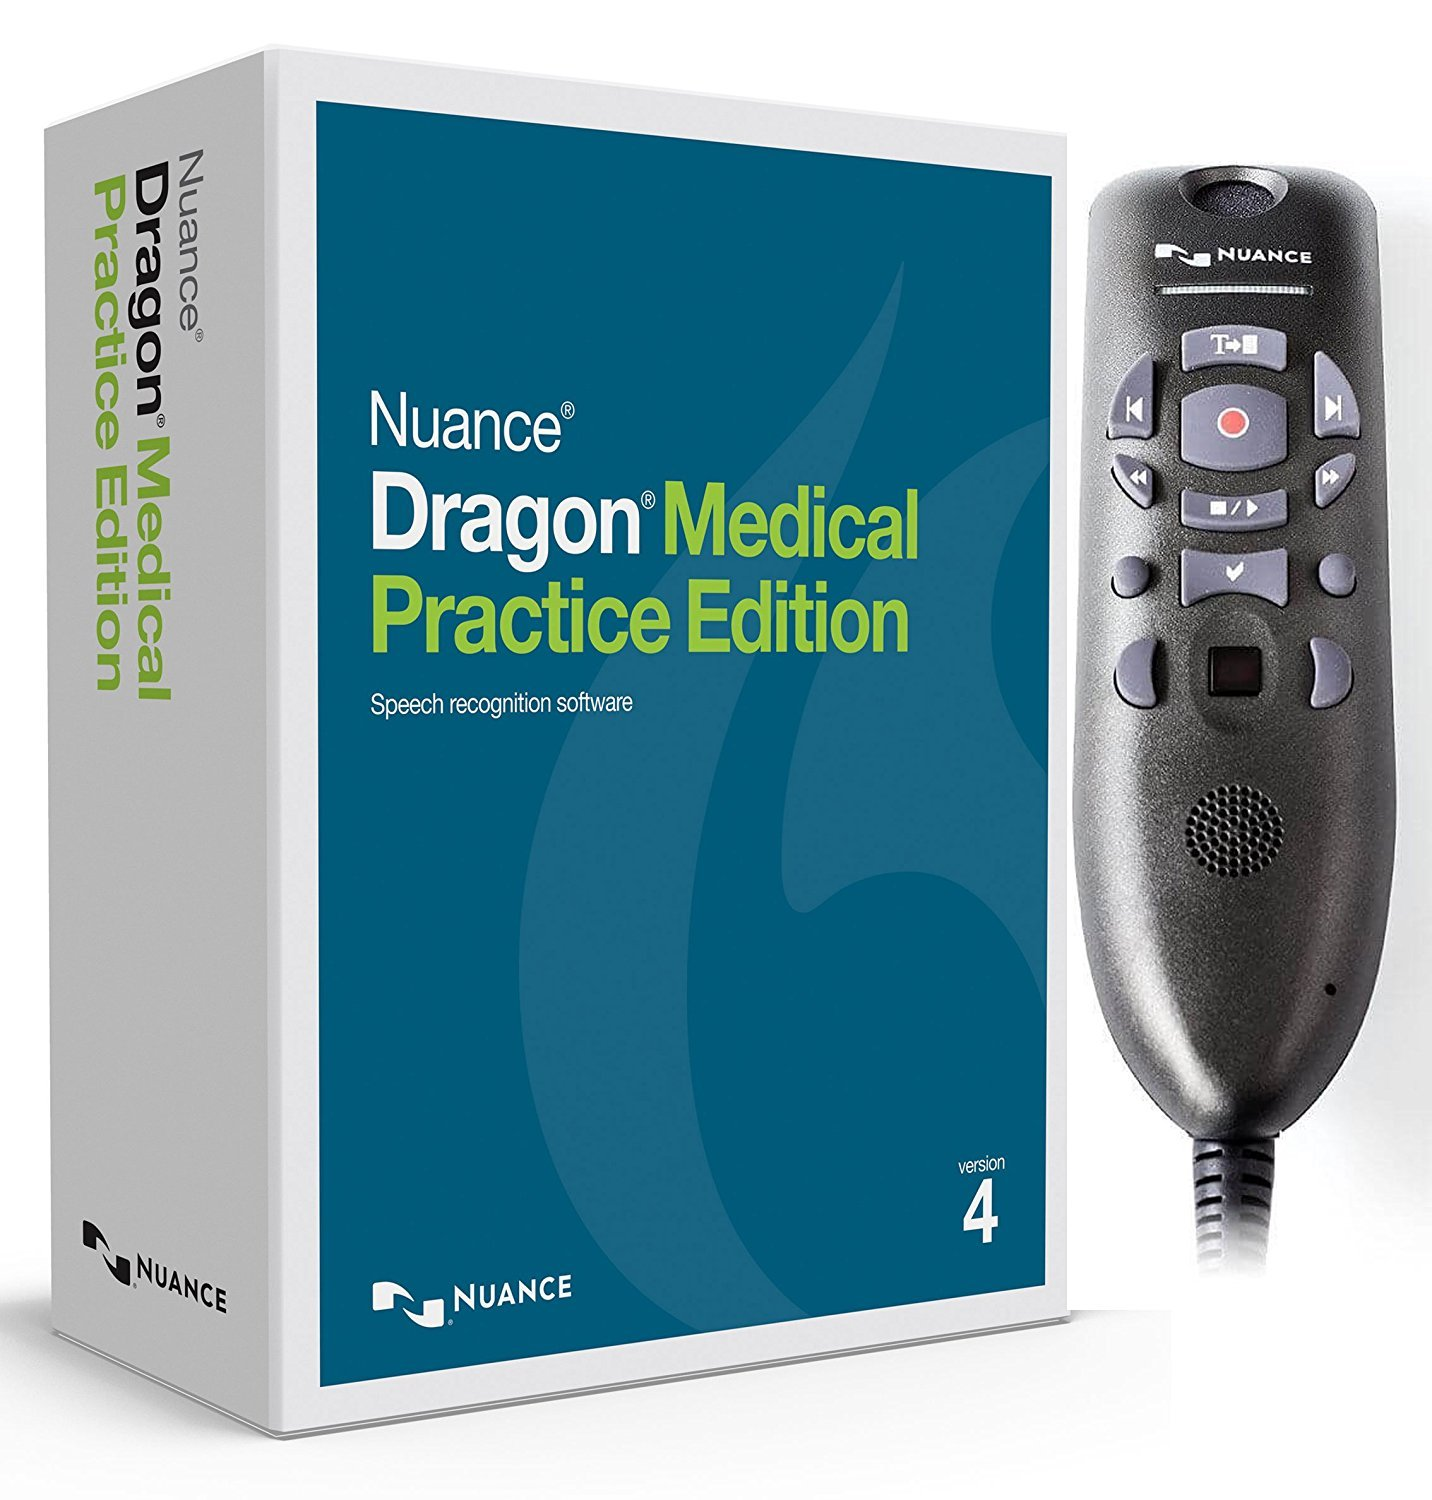 Dragon Medical Practice Edition 4 with Powermic III for Windows (Microphone with 3 ft Coiled Cord Stretches to 6ft)